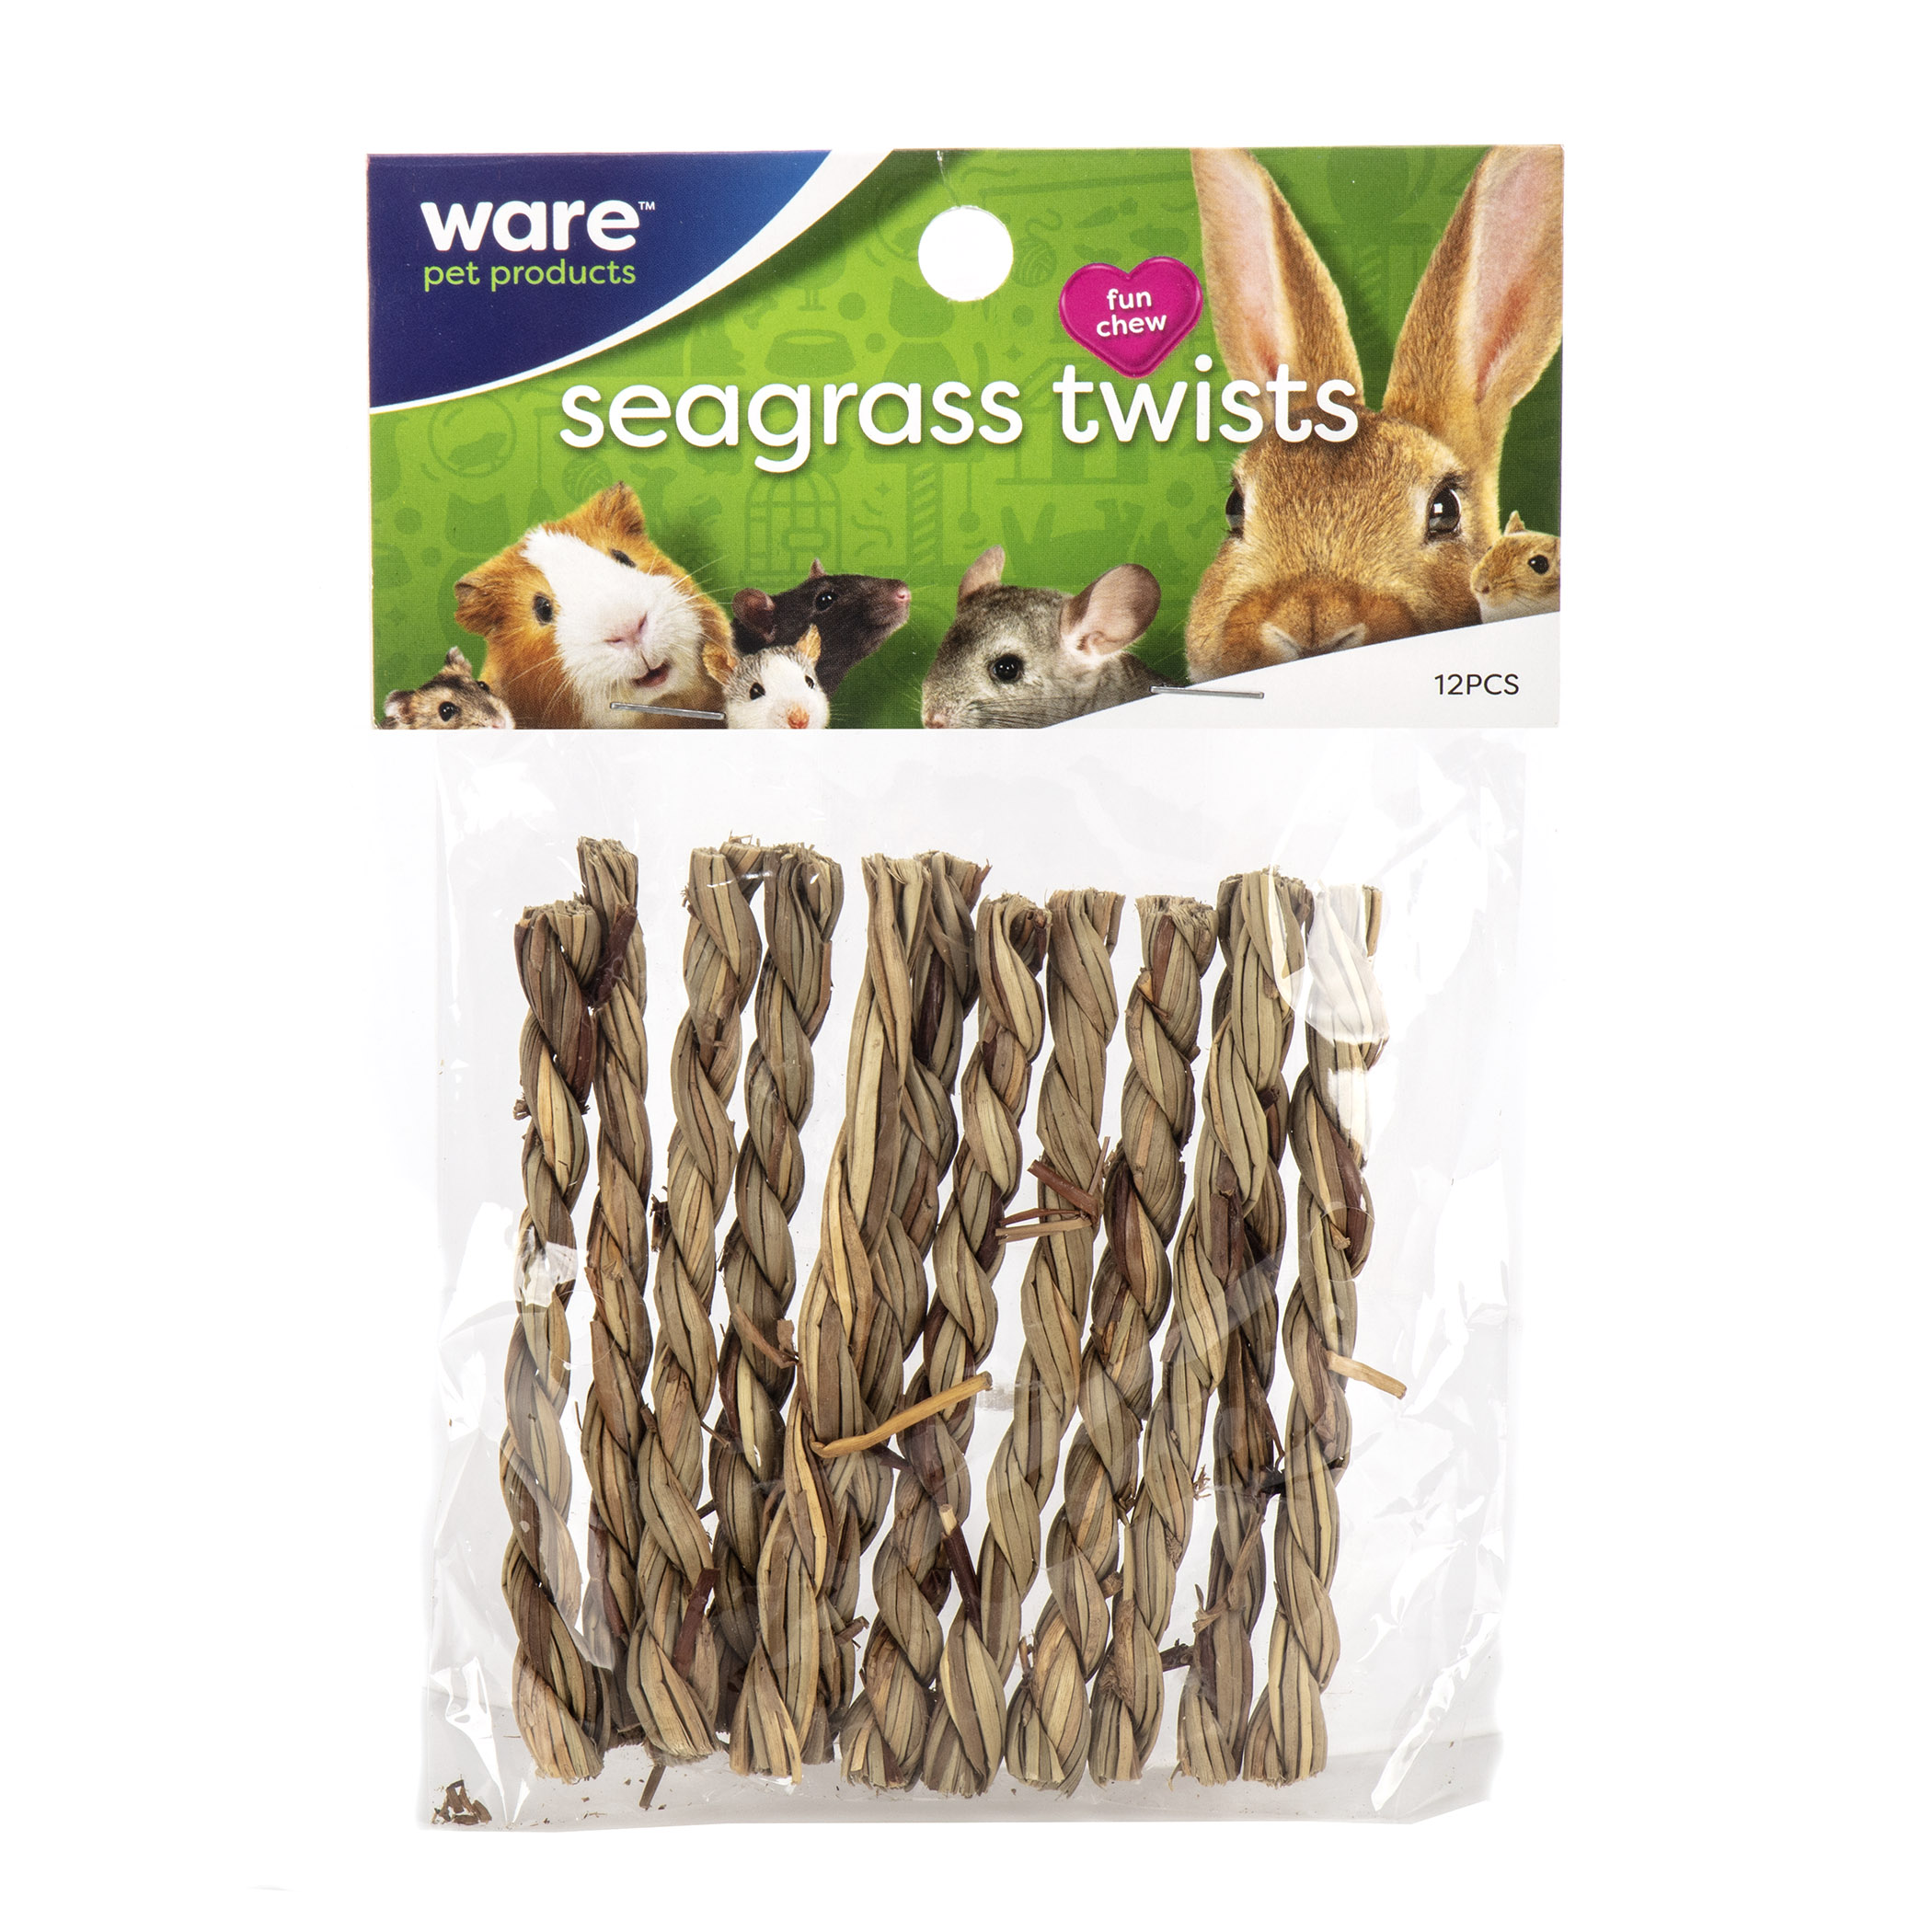 Ware Seagrass Twists, Sundried Small Pet Chew Toy Image